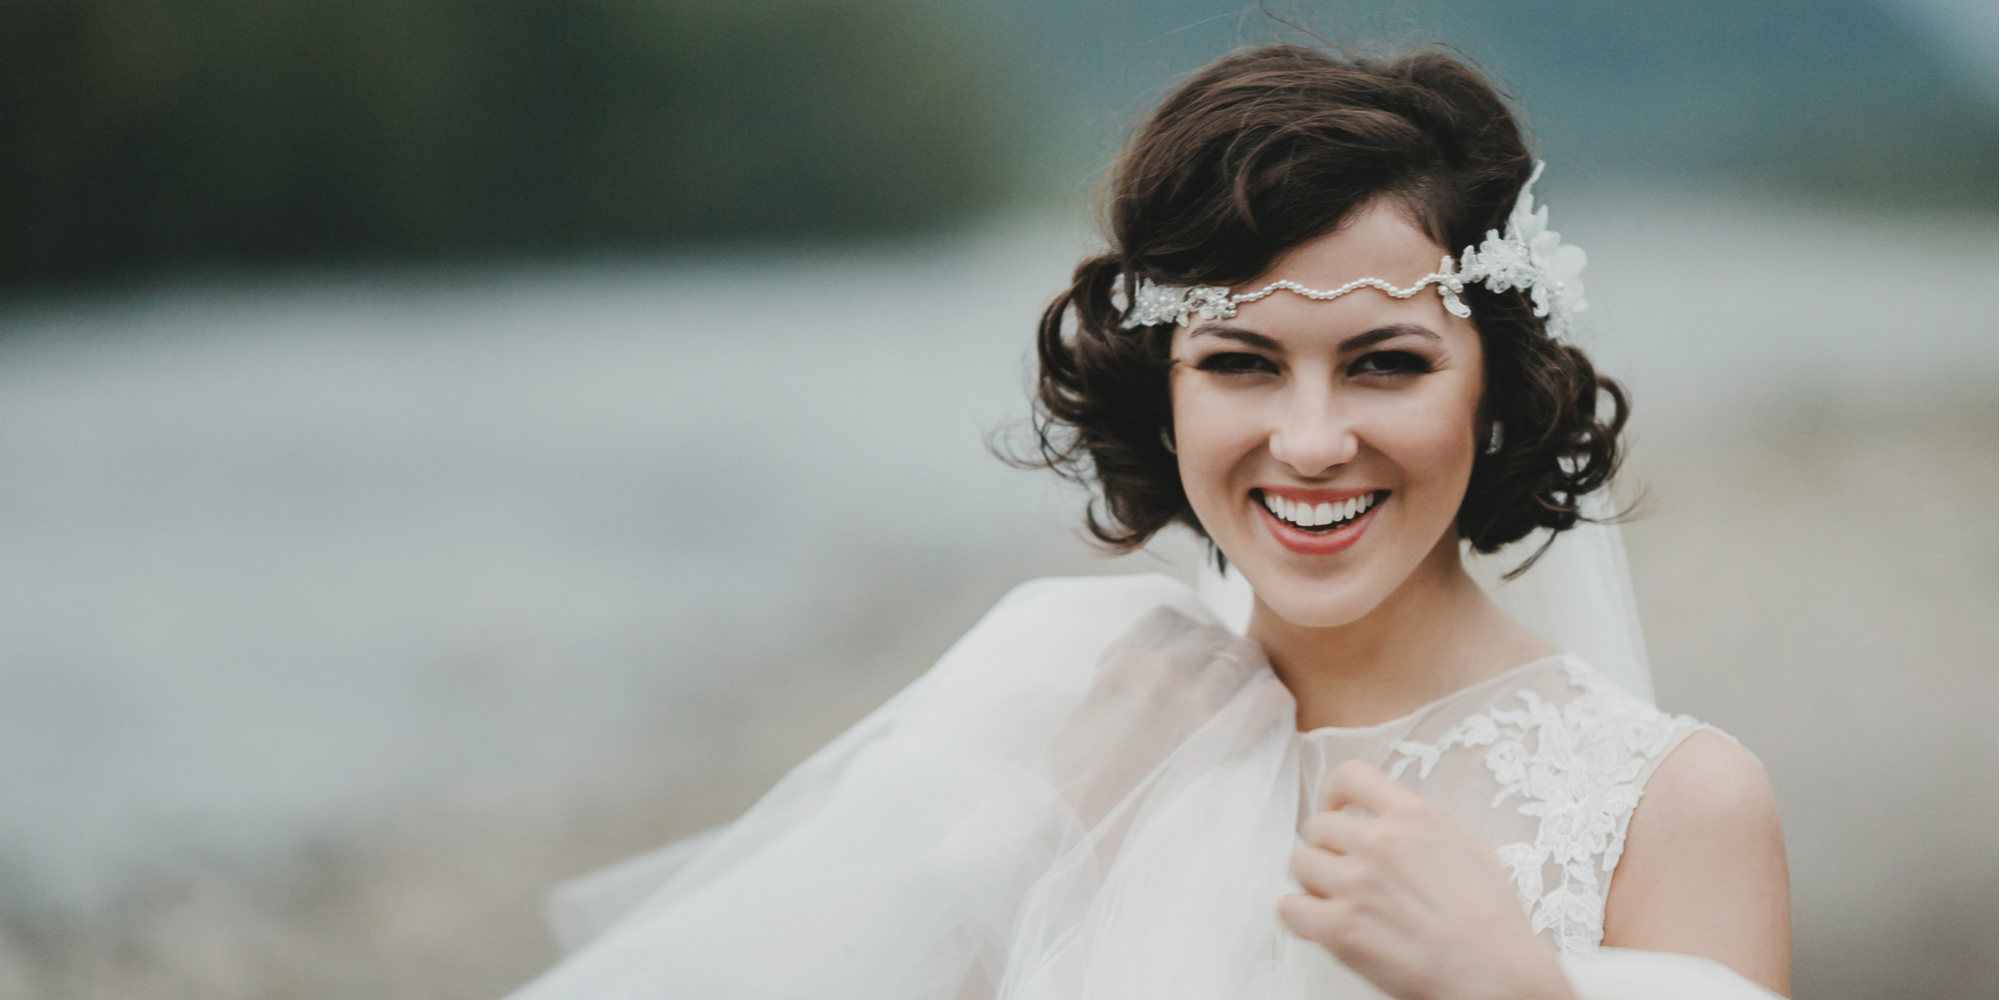 One of my favorite looks for brides with short hair is a headband veil. It is such a timeless look and will make you look so chic.